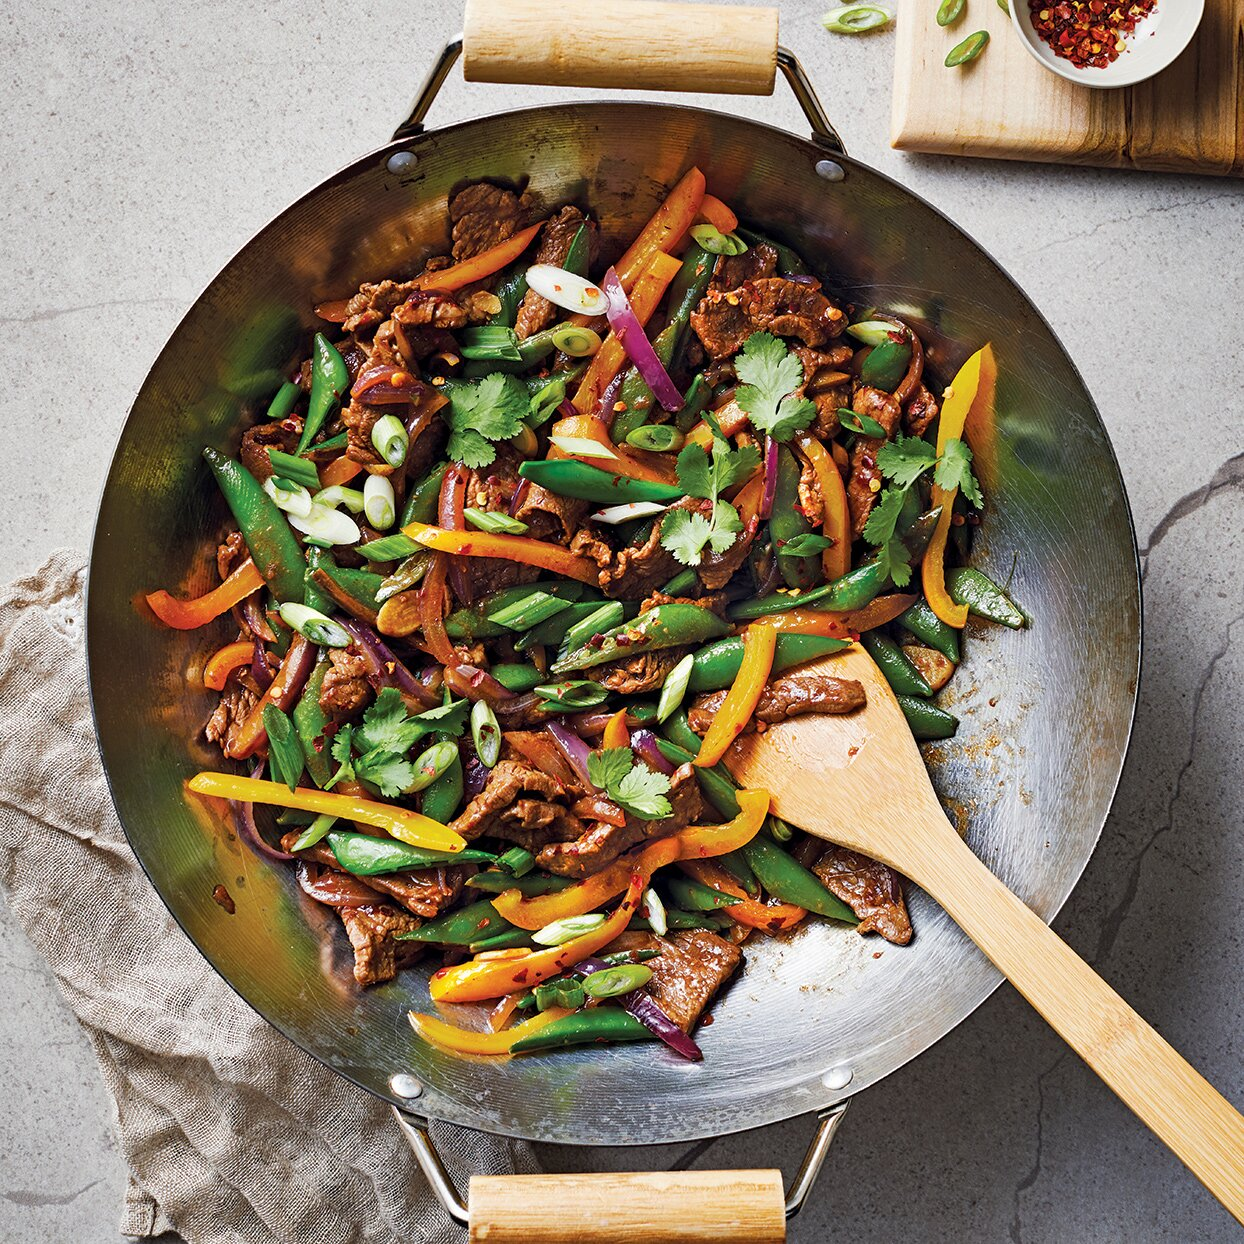 24 Easy 30 Minute Stir Fry Recipes Eatingwell